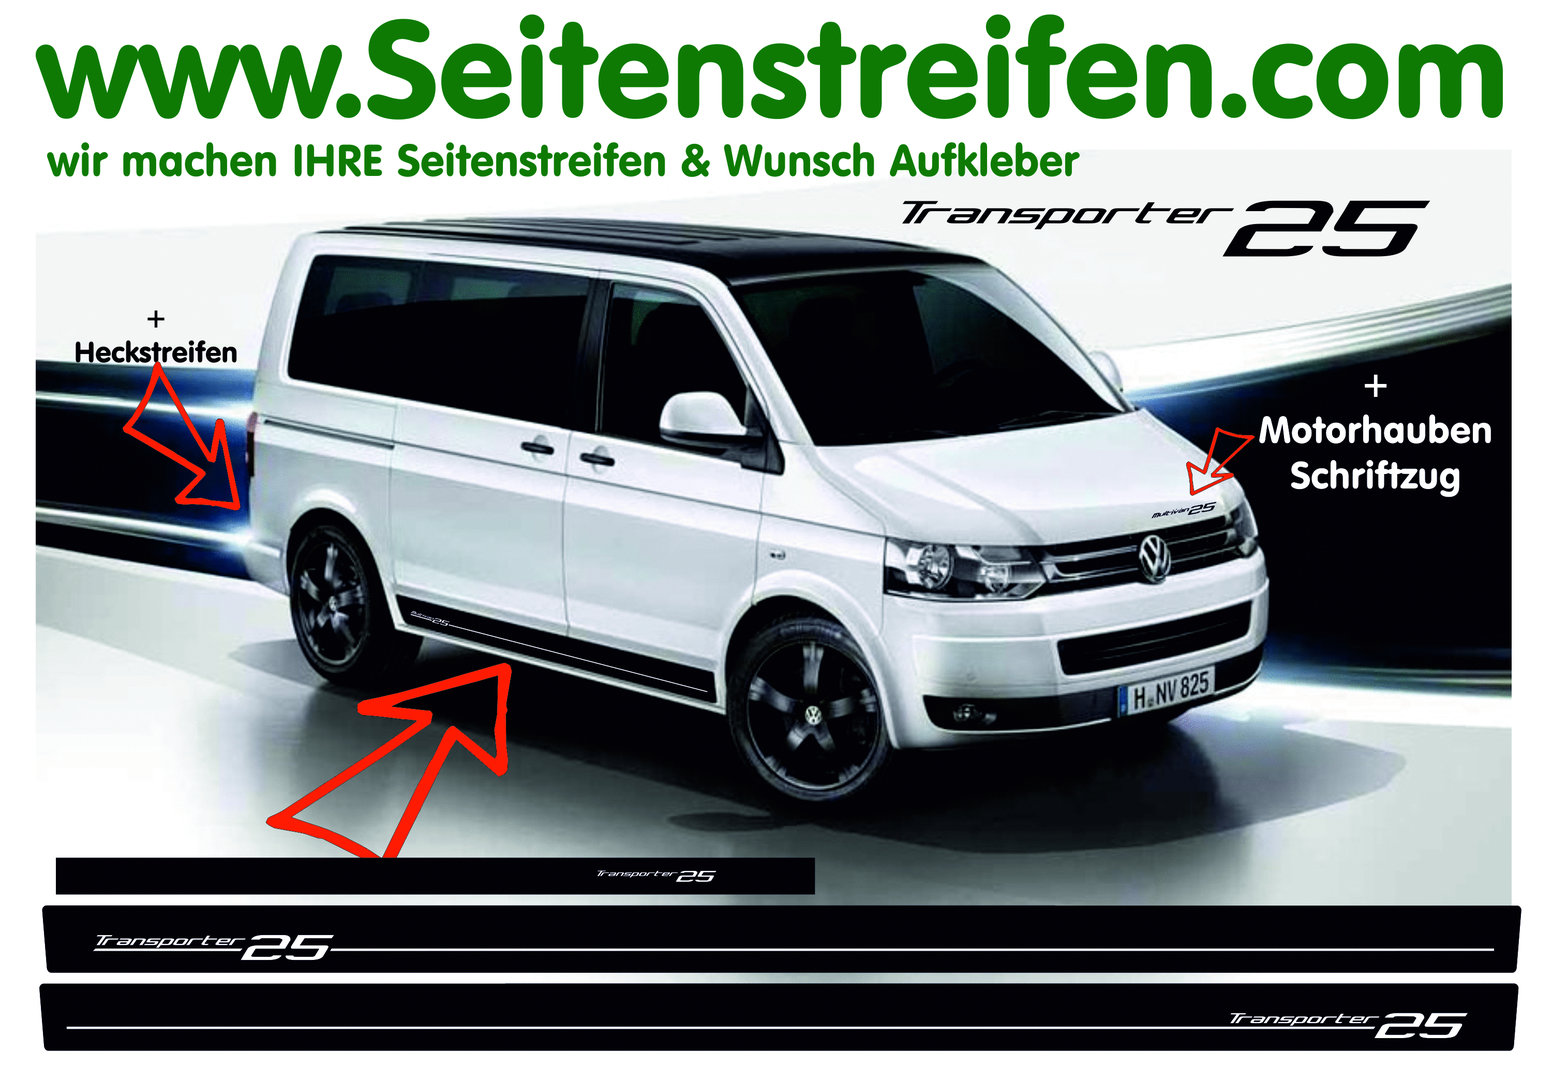 VW Bus T4  T5 Transporter 25  Pegatinas Laterales Adhesivo - set completo - N° 7002